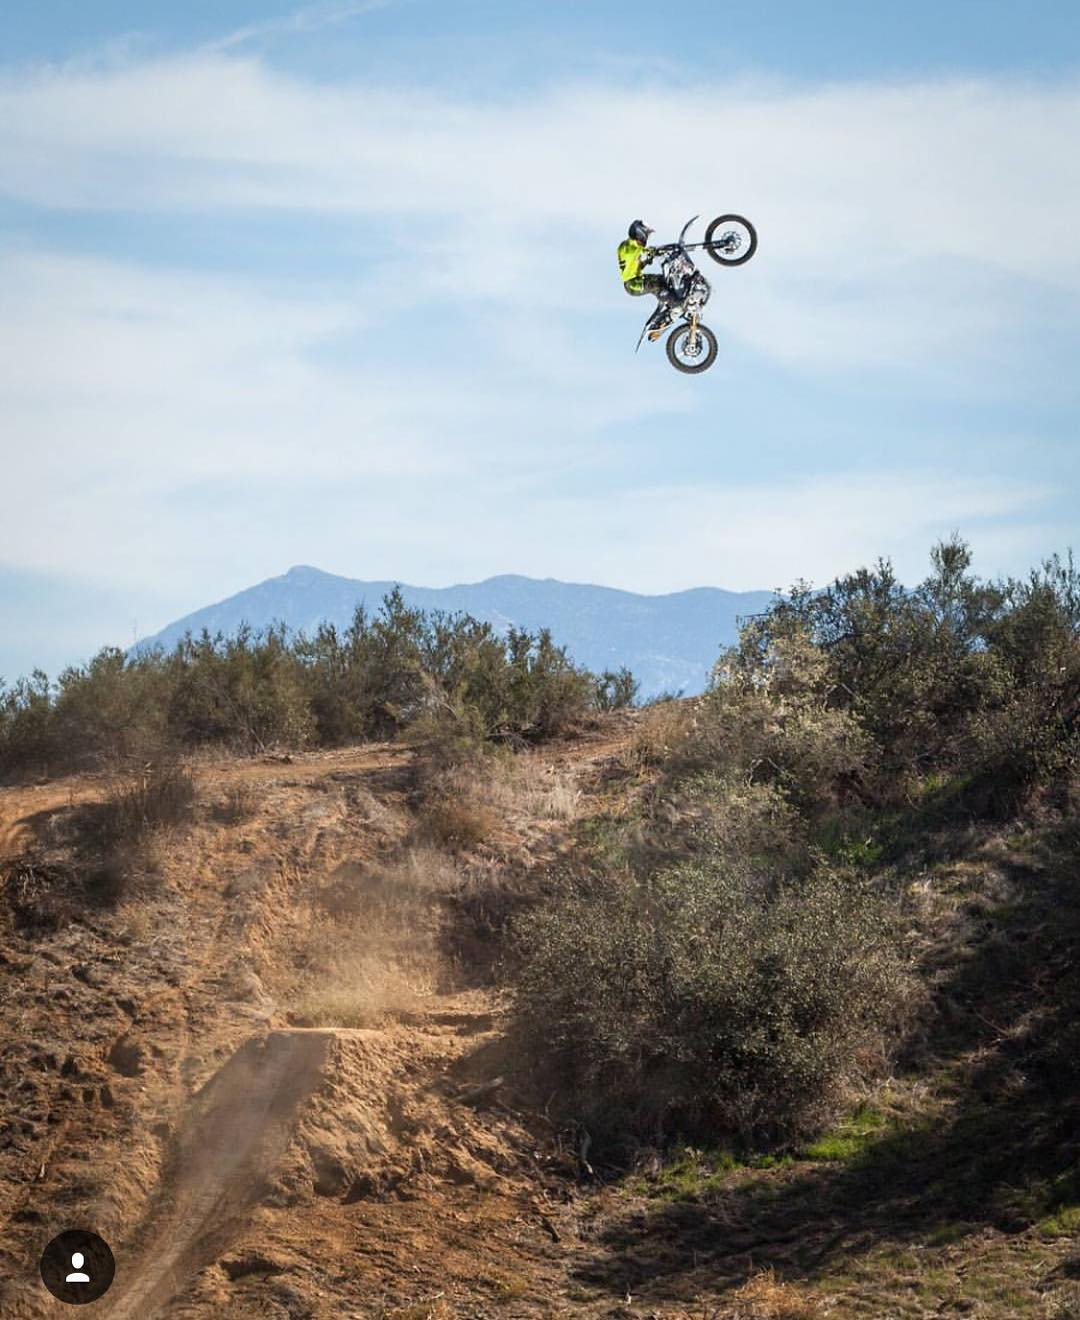 #WhipItWednesday | @McGnarls getting #CRANKED